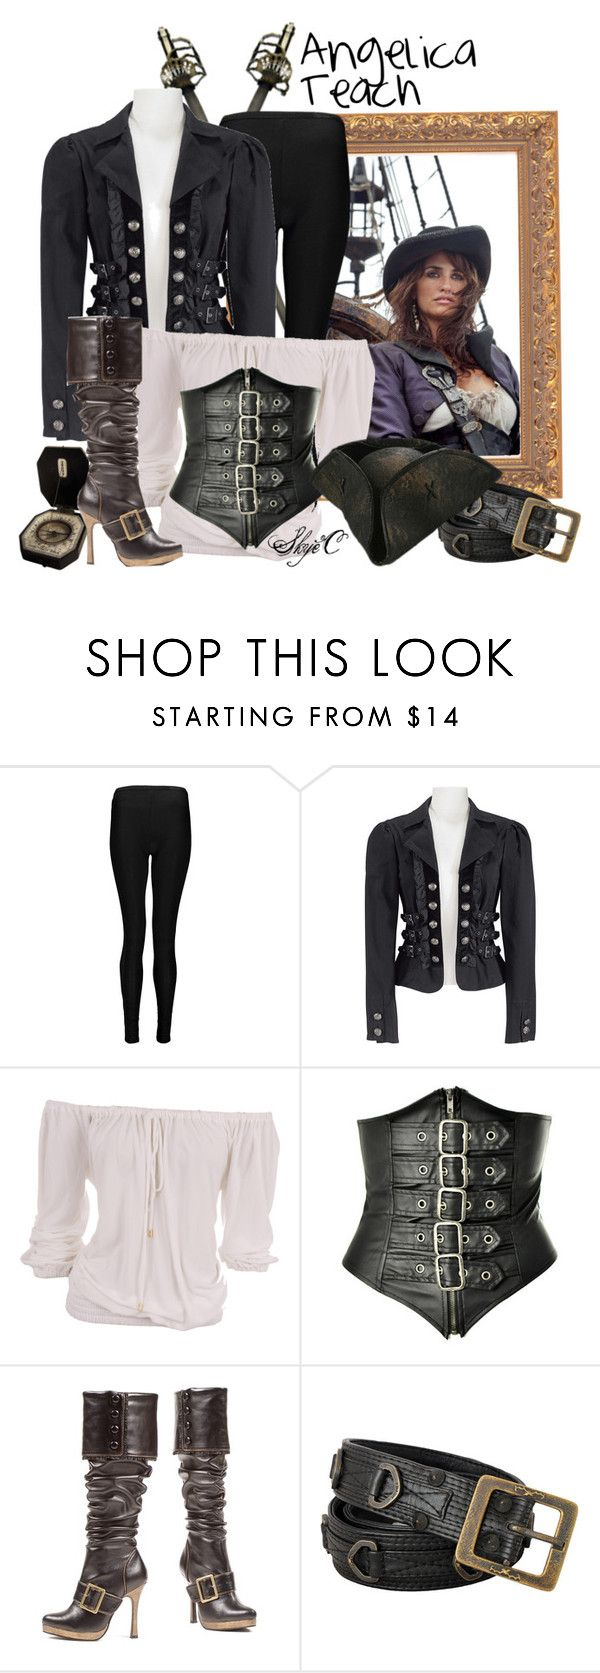 """Angelica Teach - Disney's Pirates of the Caribbean"" by rubytyra ❤ liked on Polyvore featuring Boohoo and Michael Kors"